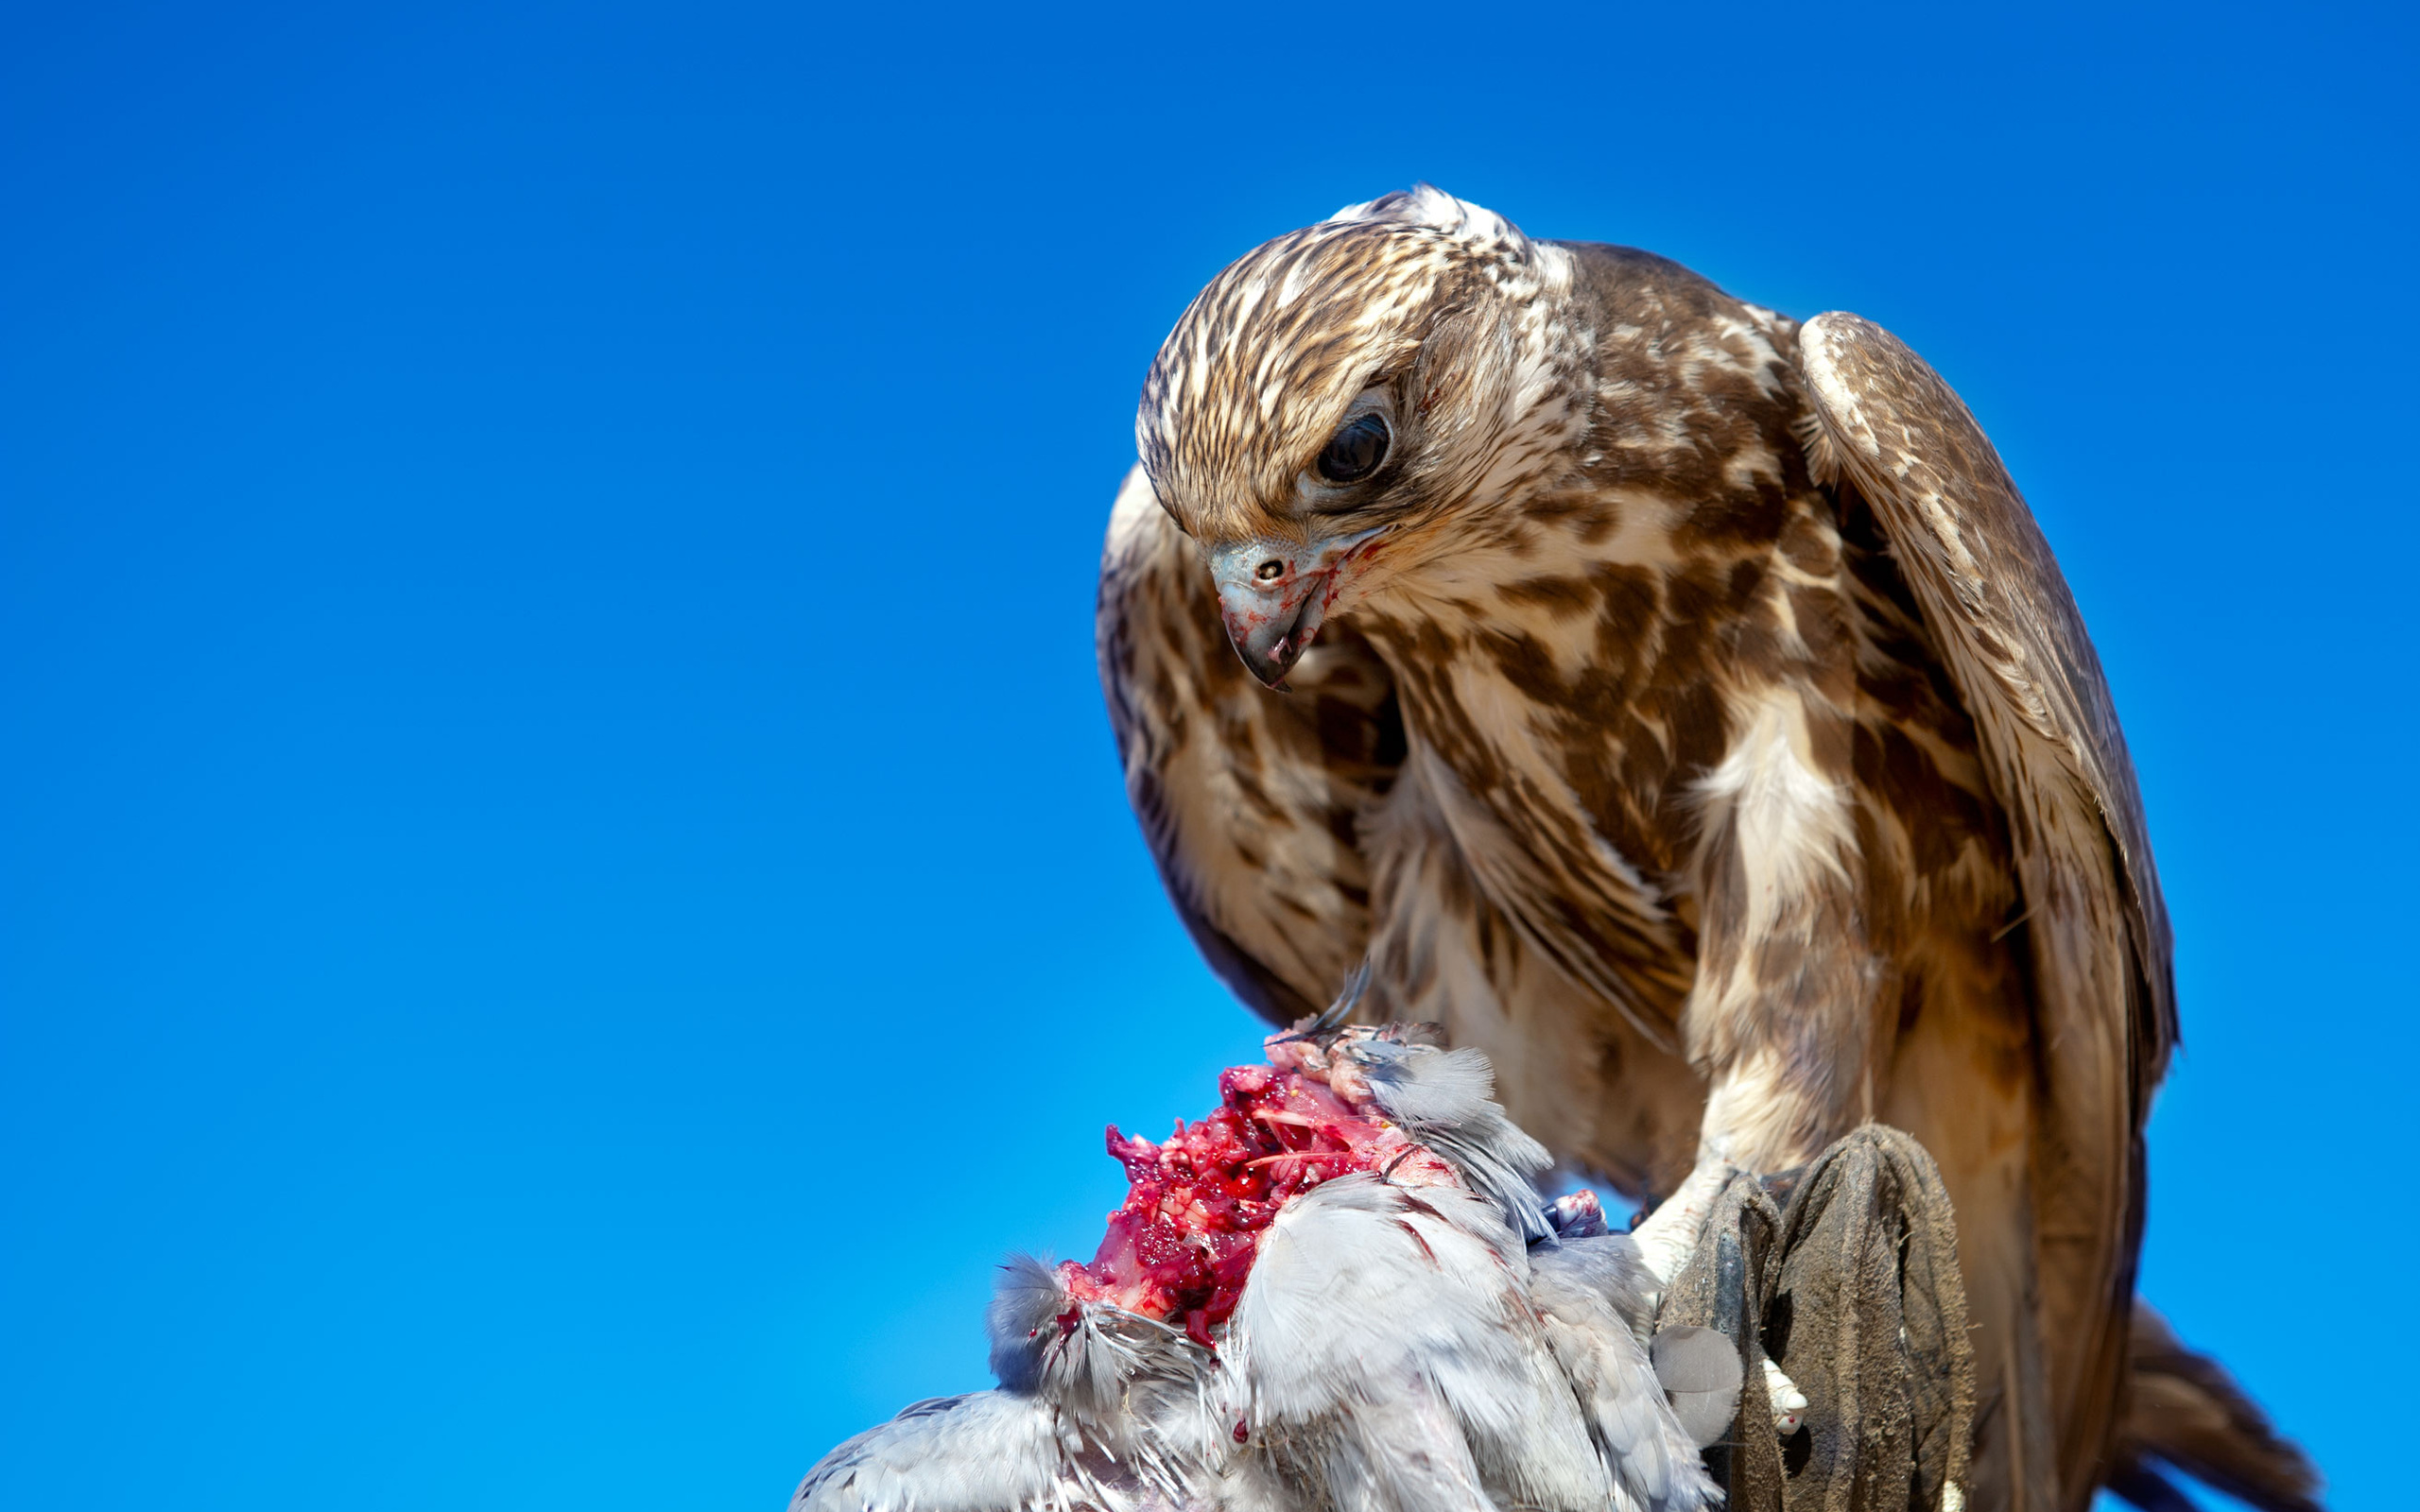 Hawk full hd wallpaper and background image 2560x1600 - Hawk iphone wallpaper ...